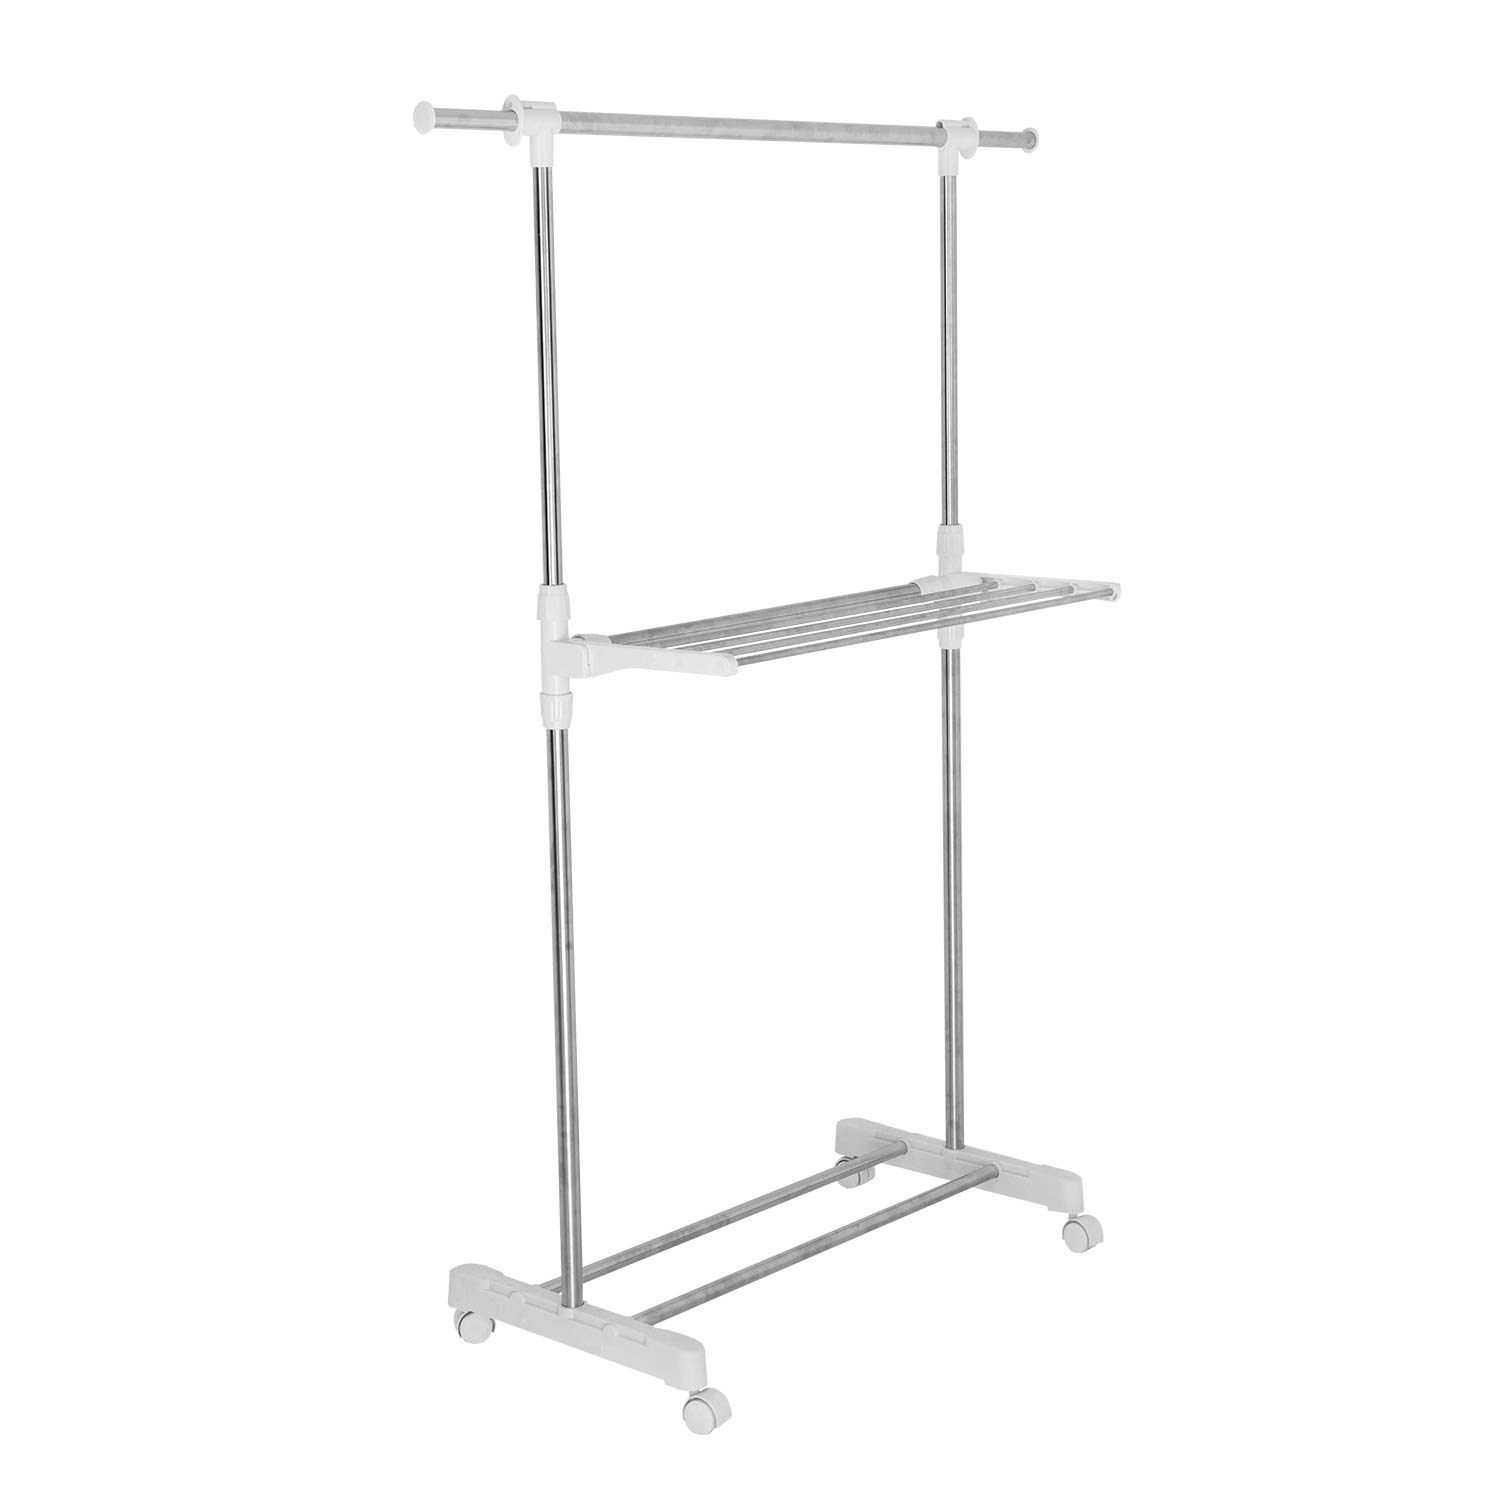 Soges Entryway Coat Rack with Storage Shoe Rack Hallway Organizer,Adjustable 3-Tier Shelves Stainless Steel XK-Z8090-CA PRC